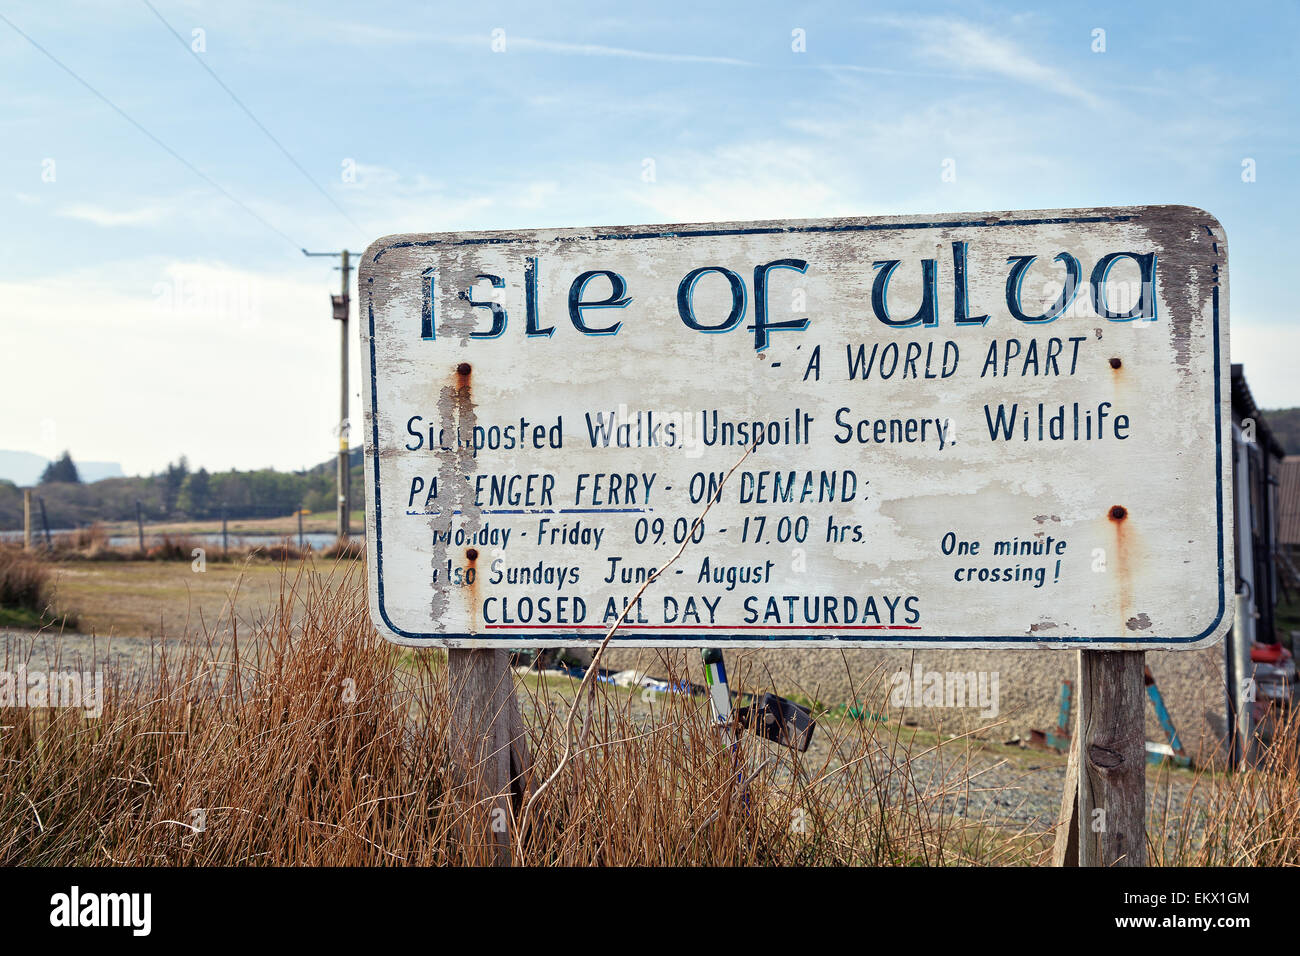 Isle of Ulva, Scotland : abandoned tourist signboard - Stock Image